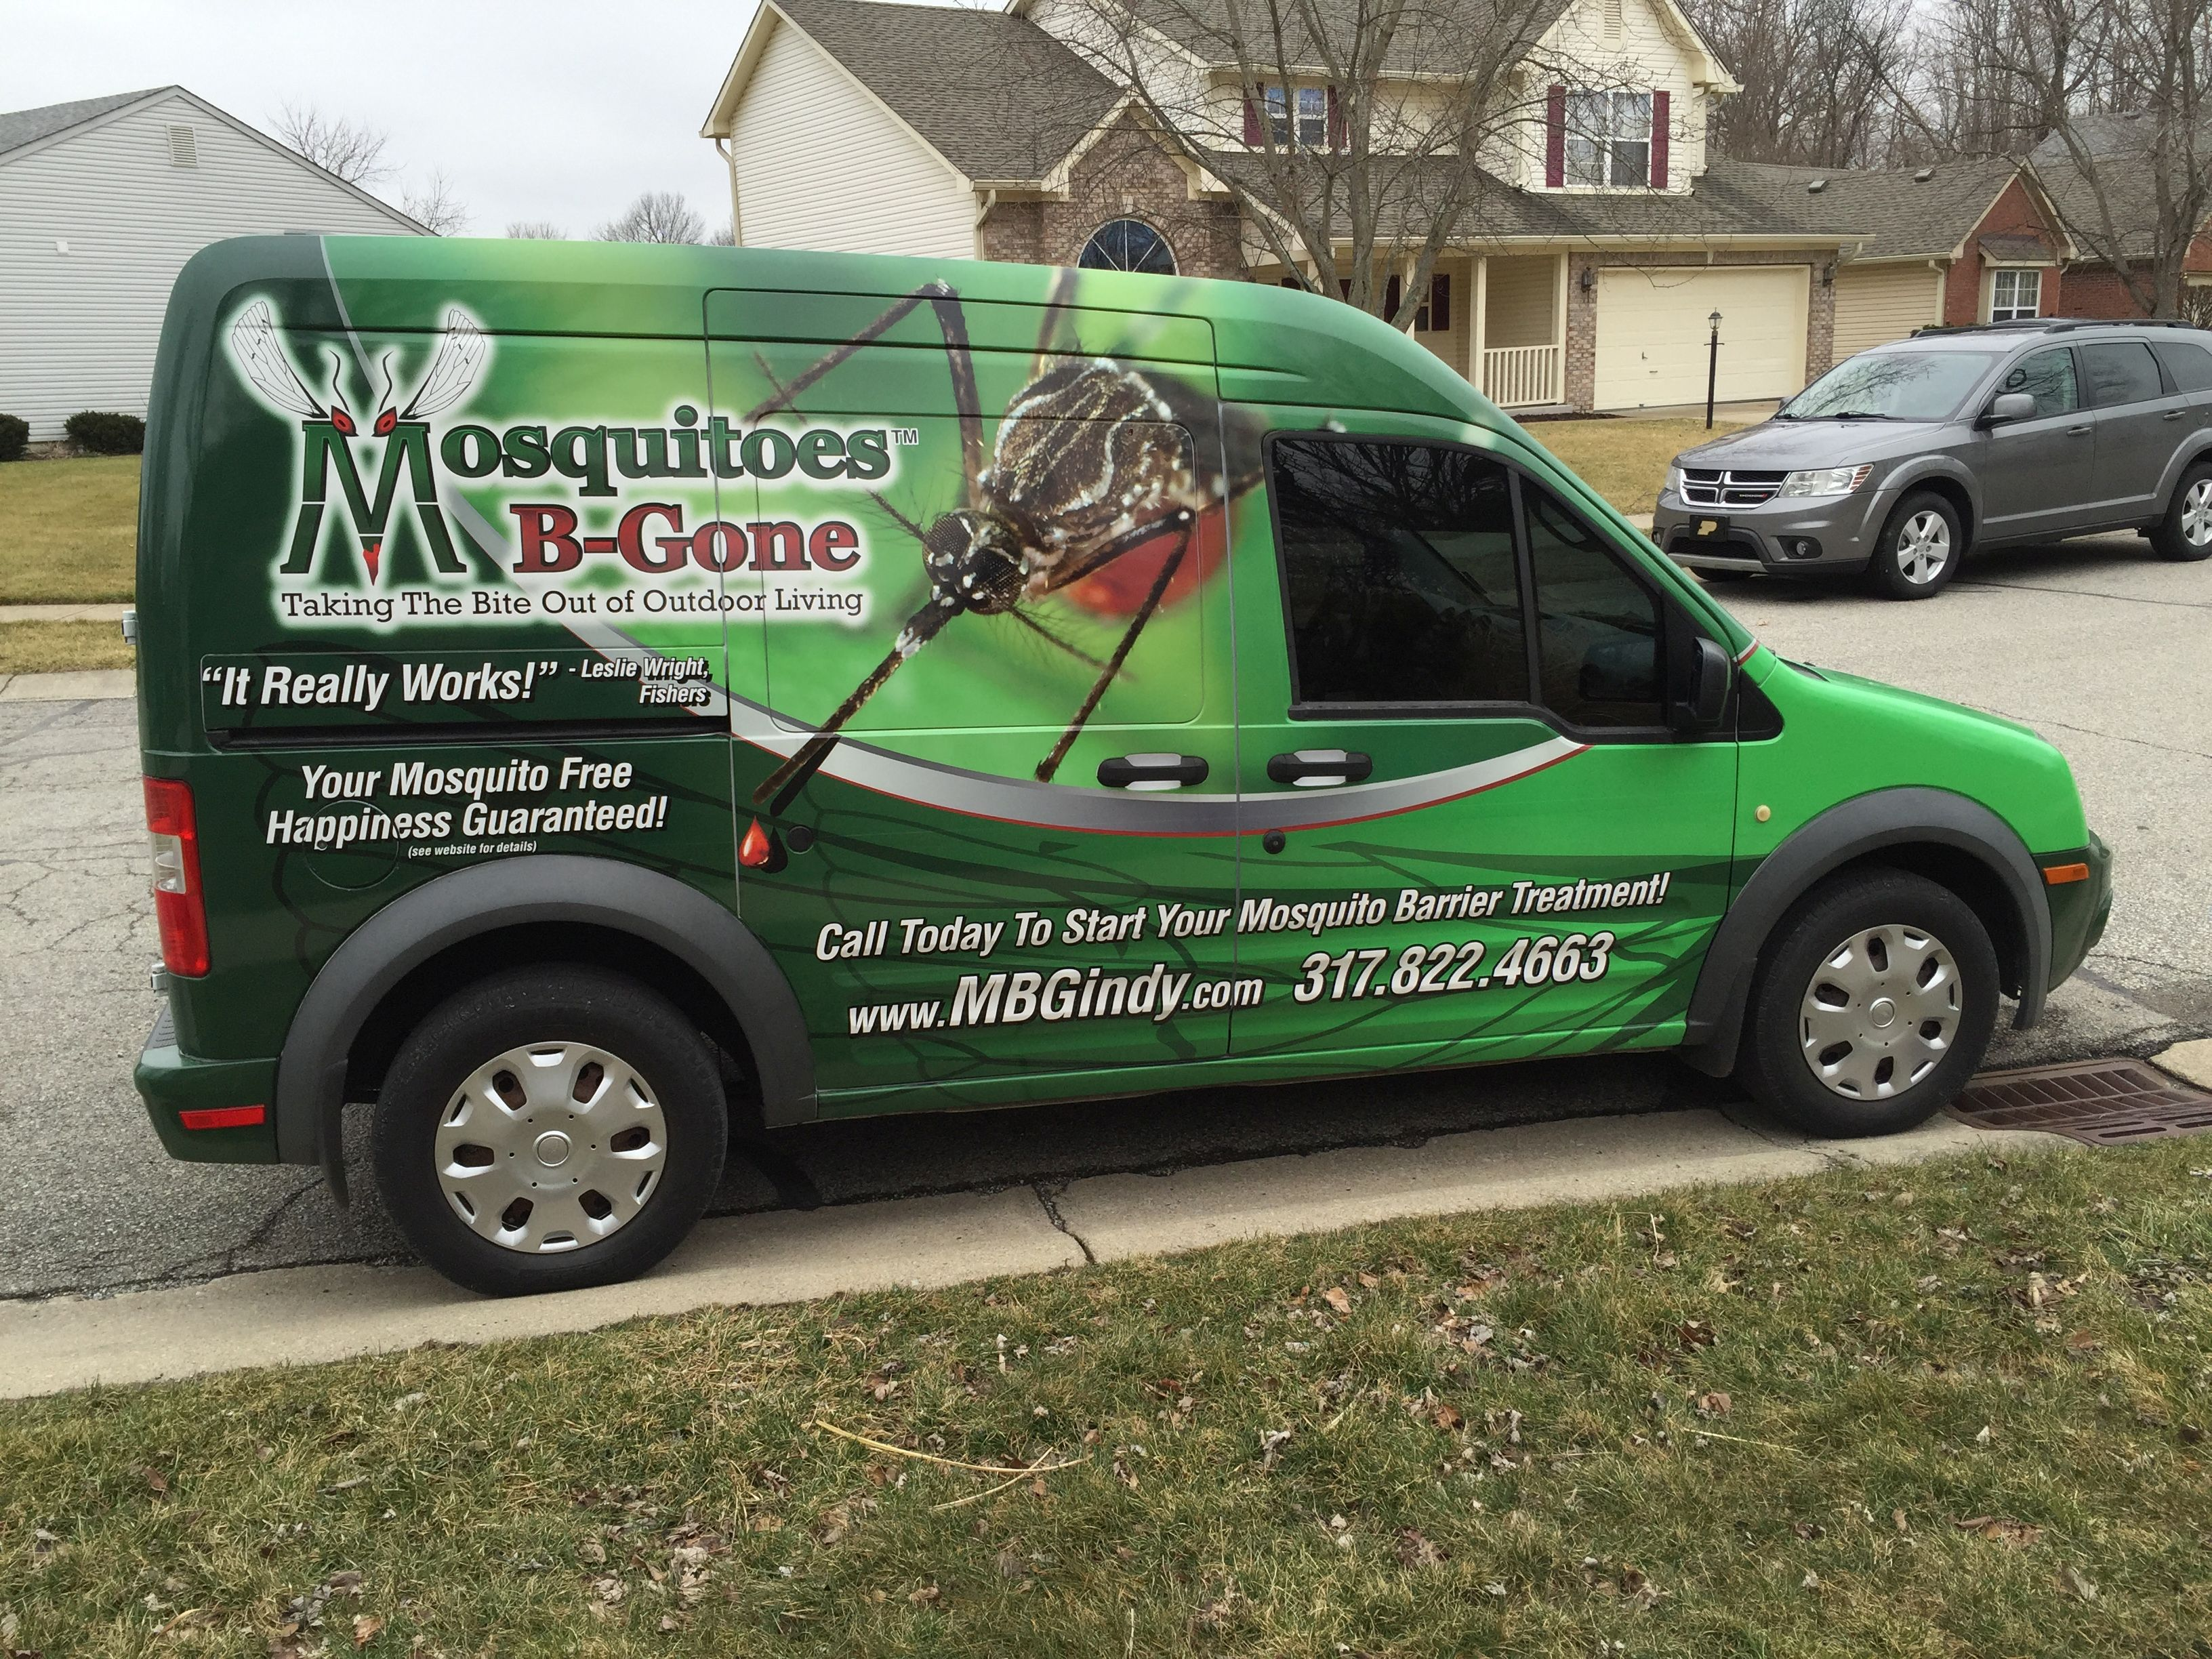 Creating an Eye-Catching Vehicle Wrap (Without Going Overboard)